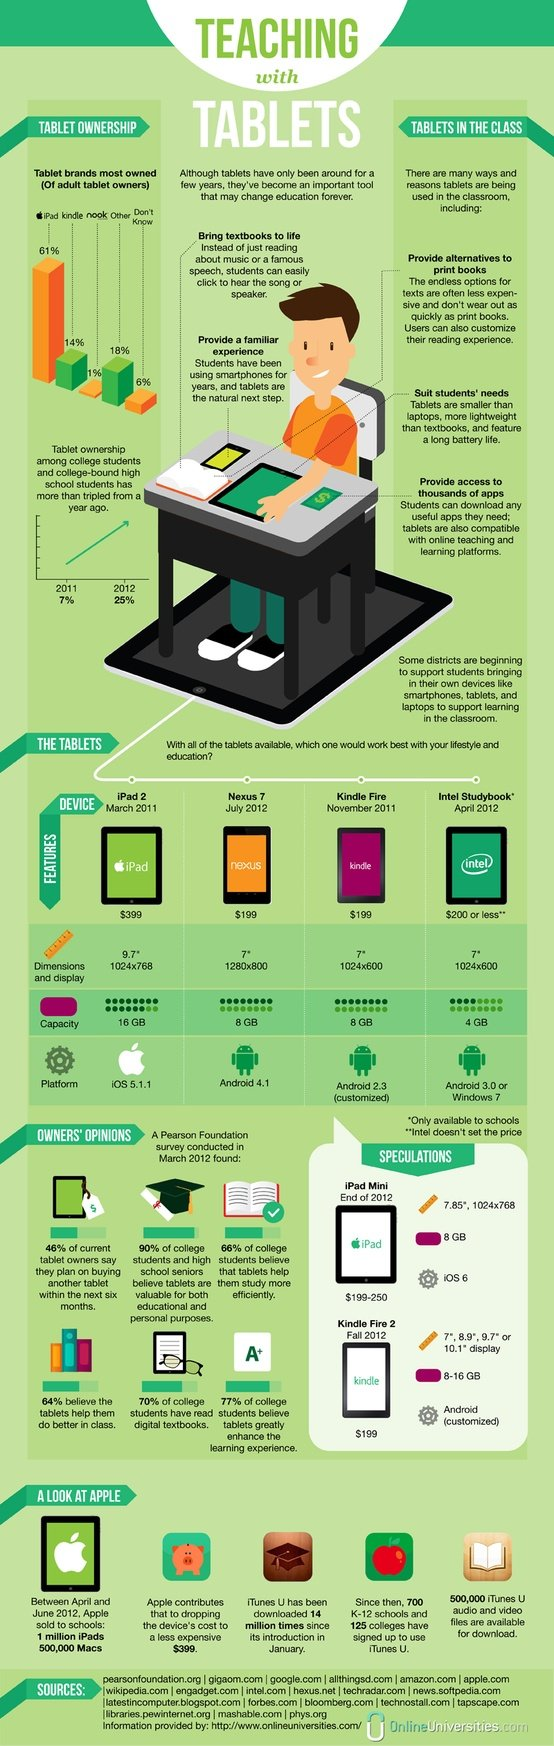 iPads in the Classroom: Changing Education (Infographic)